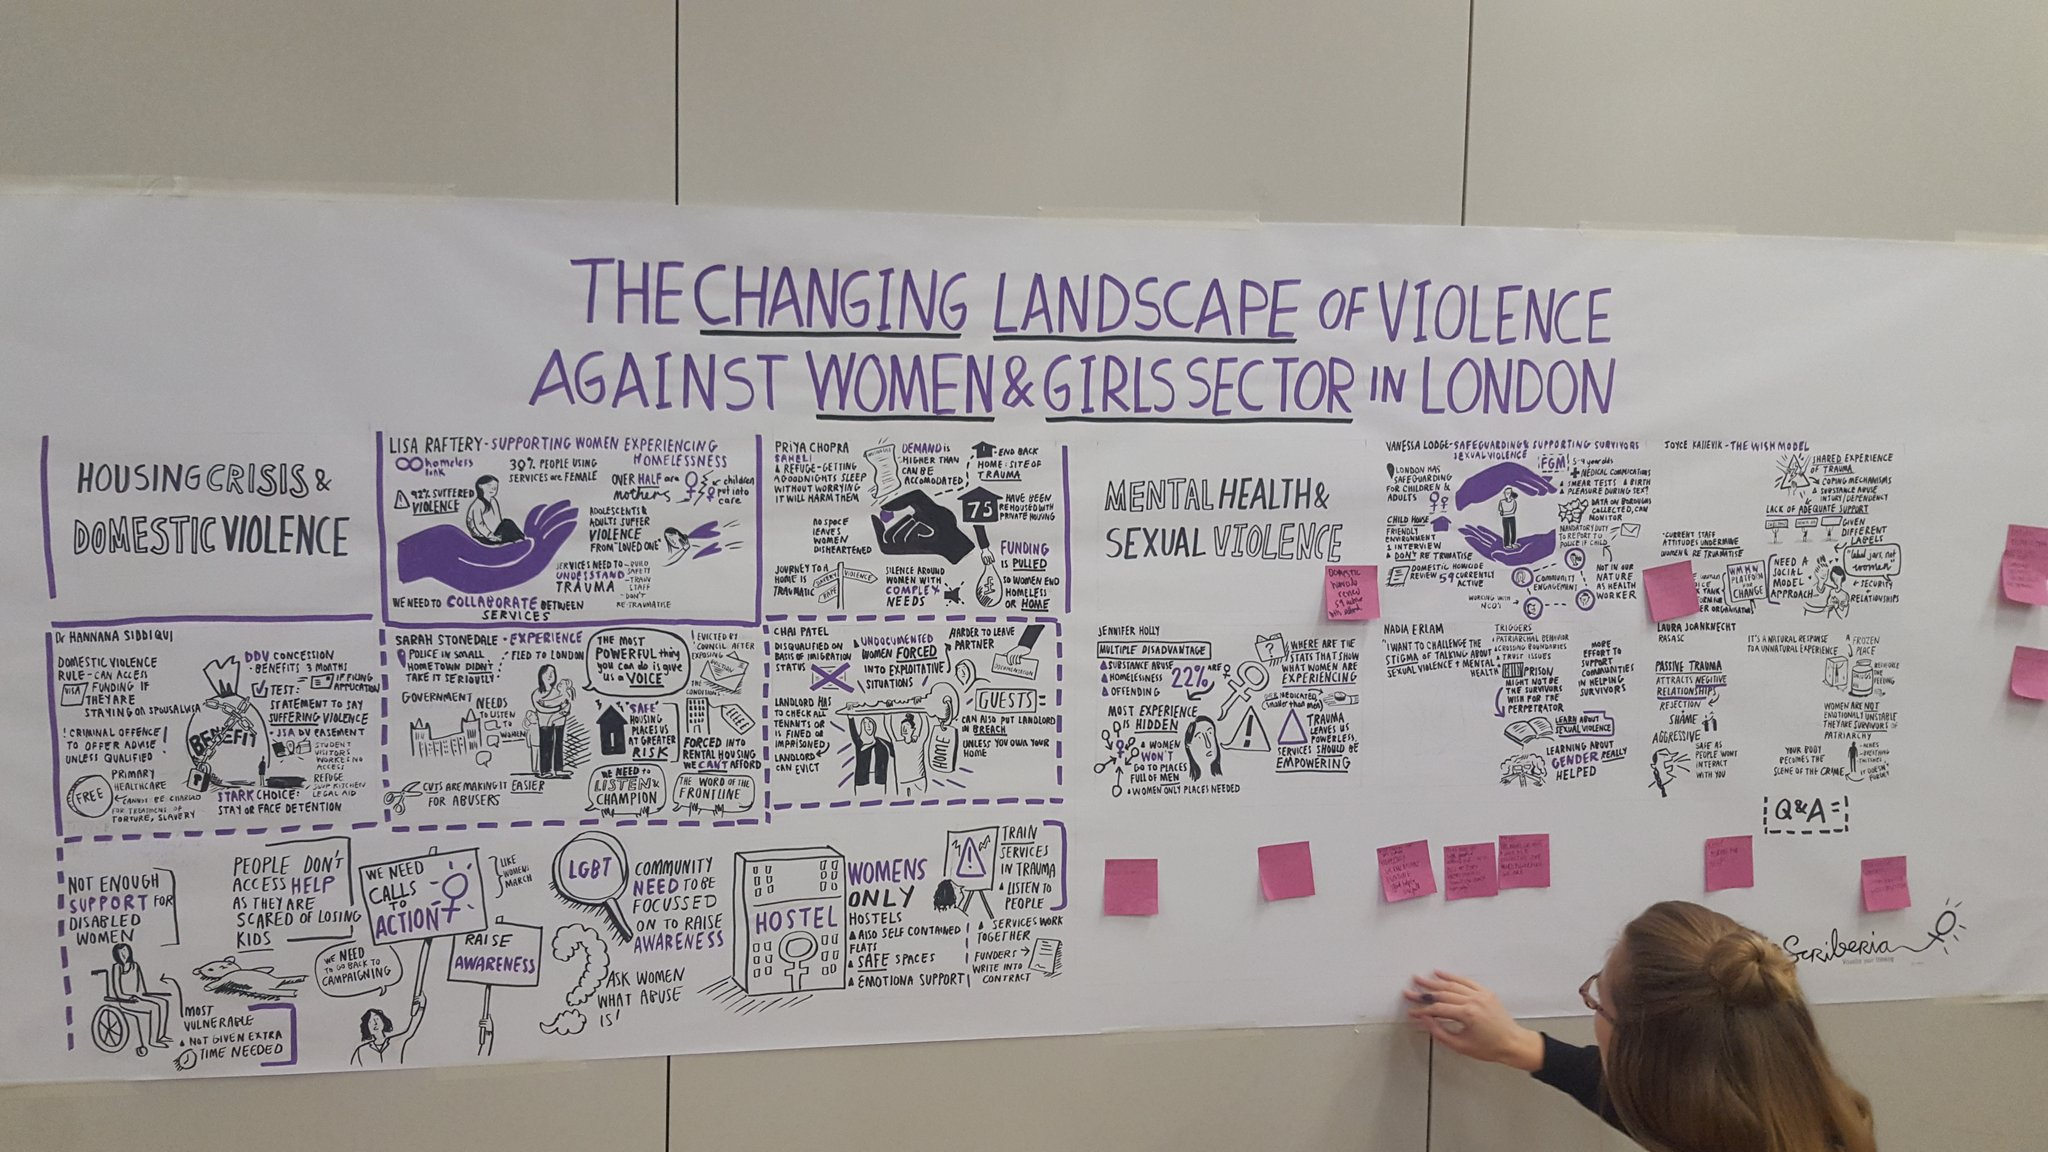 Beautiful graphics illustrating today's #londonVAWG event @whywomen #ascent https://t.co/I1pk3X85dm